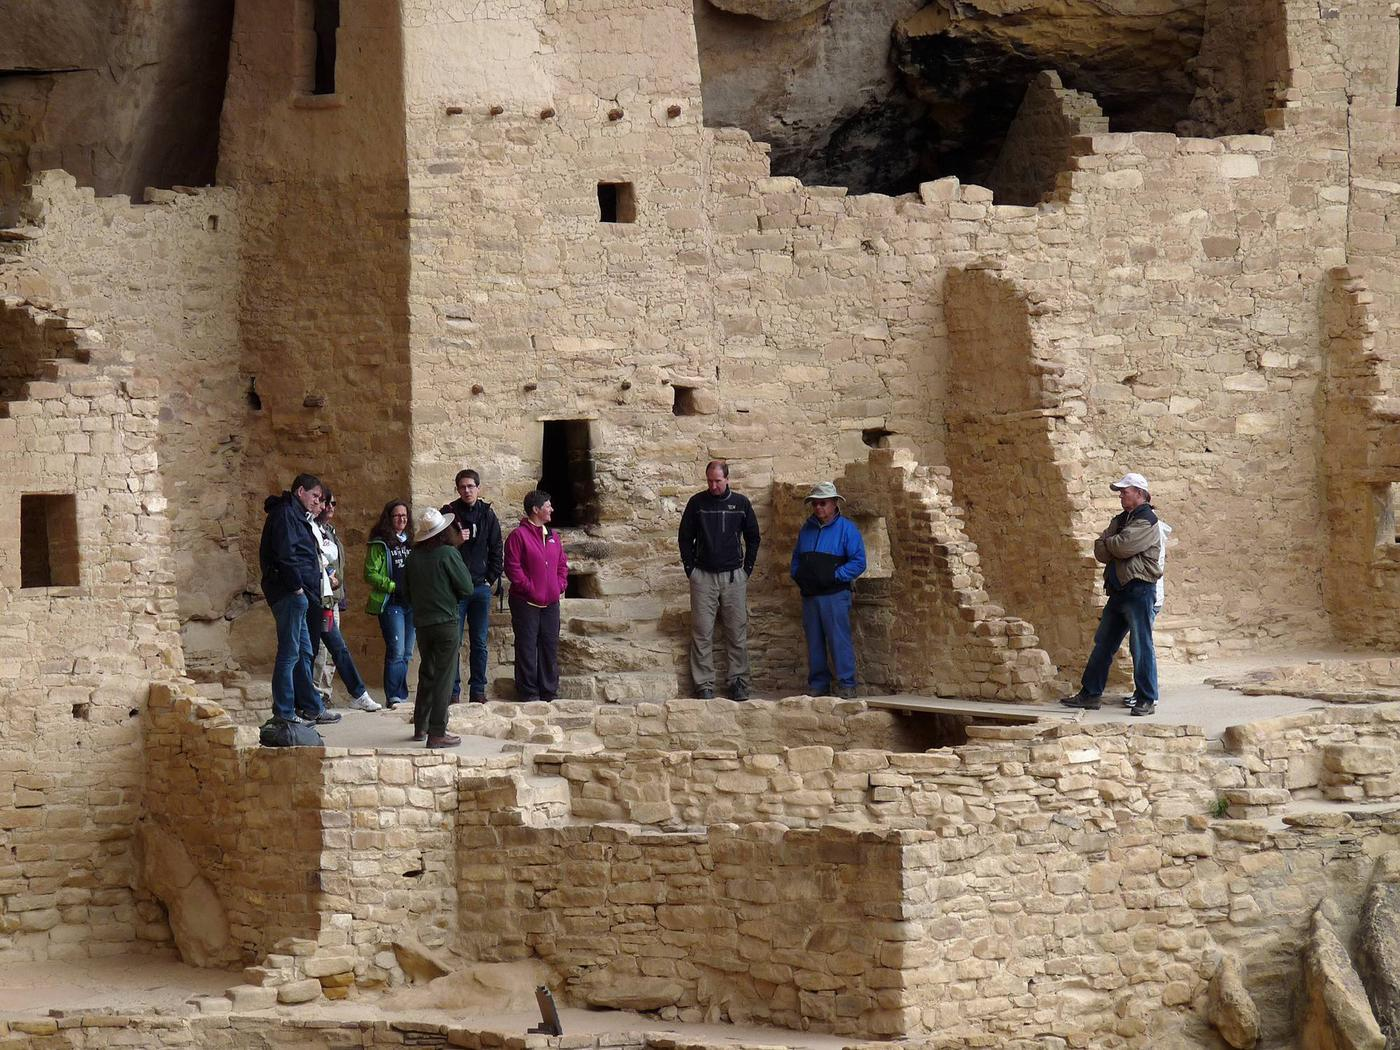 People with ranger in an ancient stone masonry villageVisitors on a ranger-guided tour of Cliff Palace.